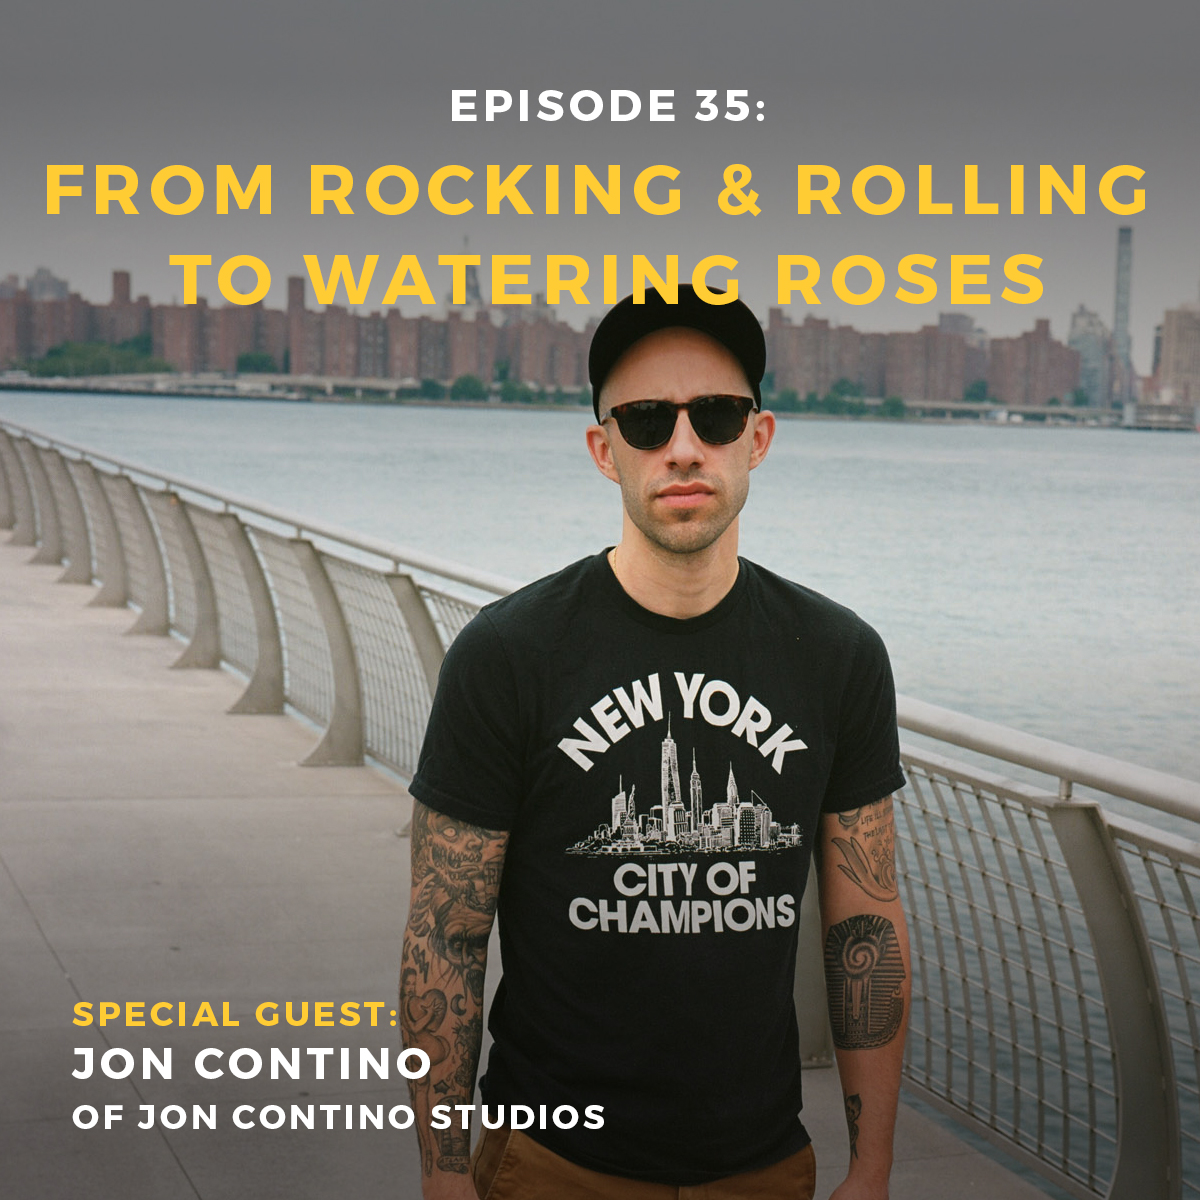 Jon Contino podcast interview on branding, hand lettering, and creative